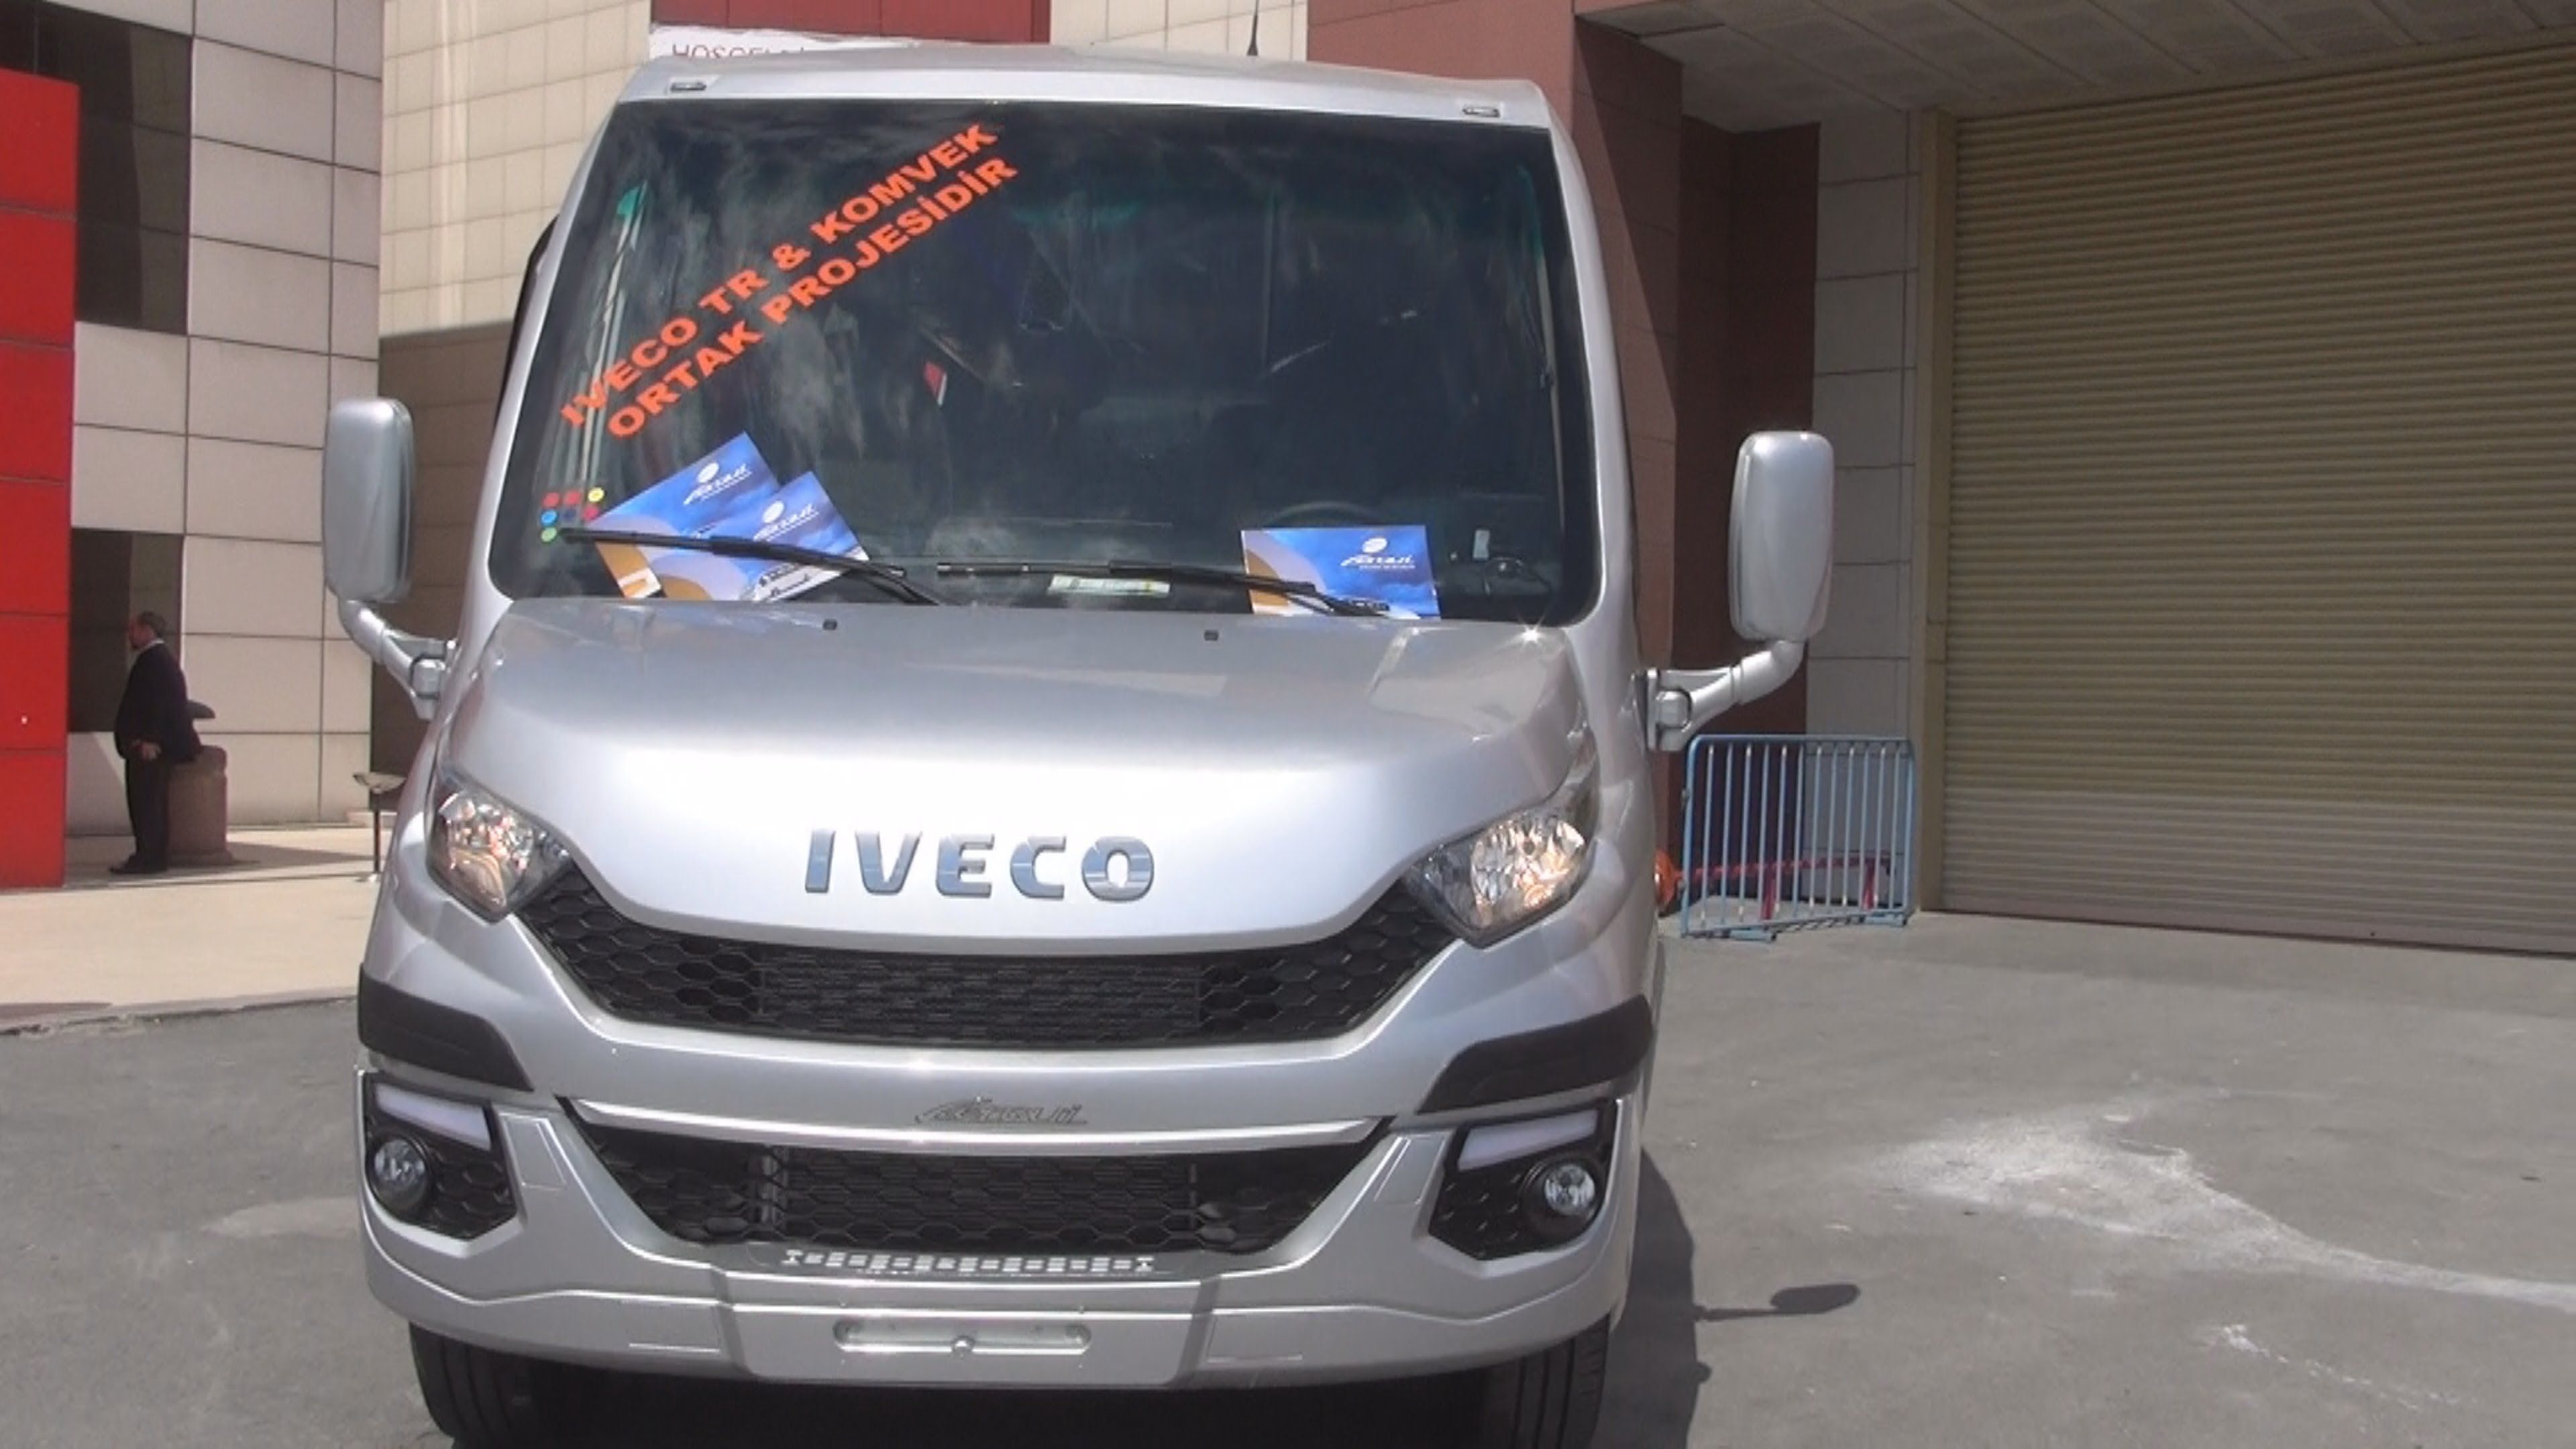 Iveco Daily Ferqui Bus (2016) Exterior and Interior in 3D | Iveco ...